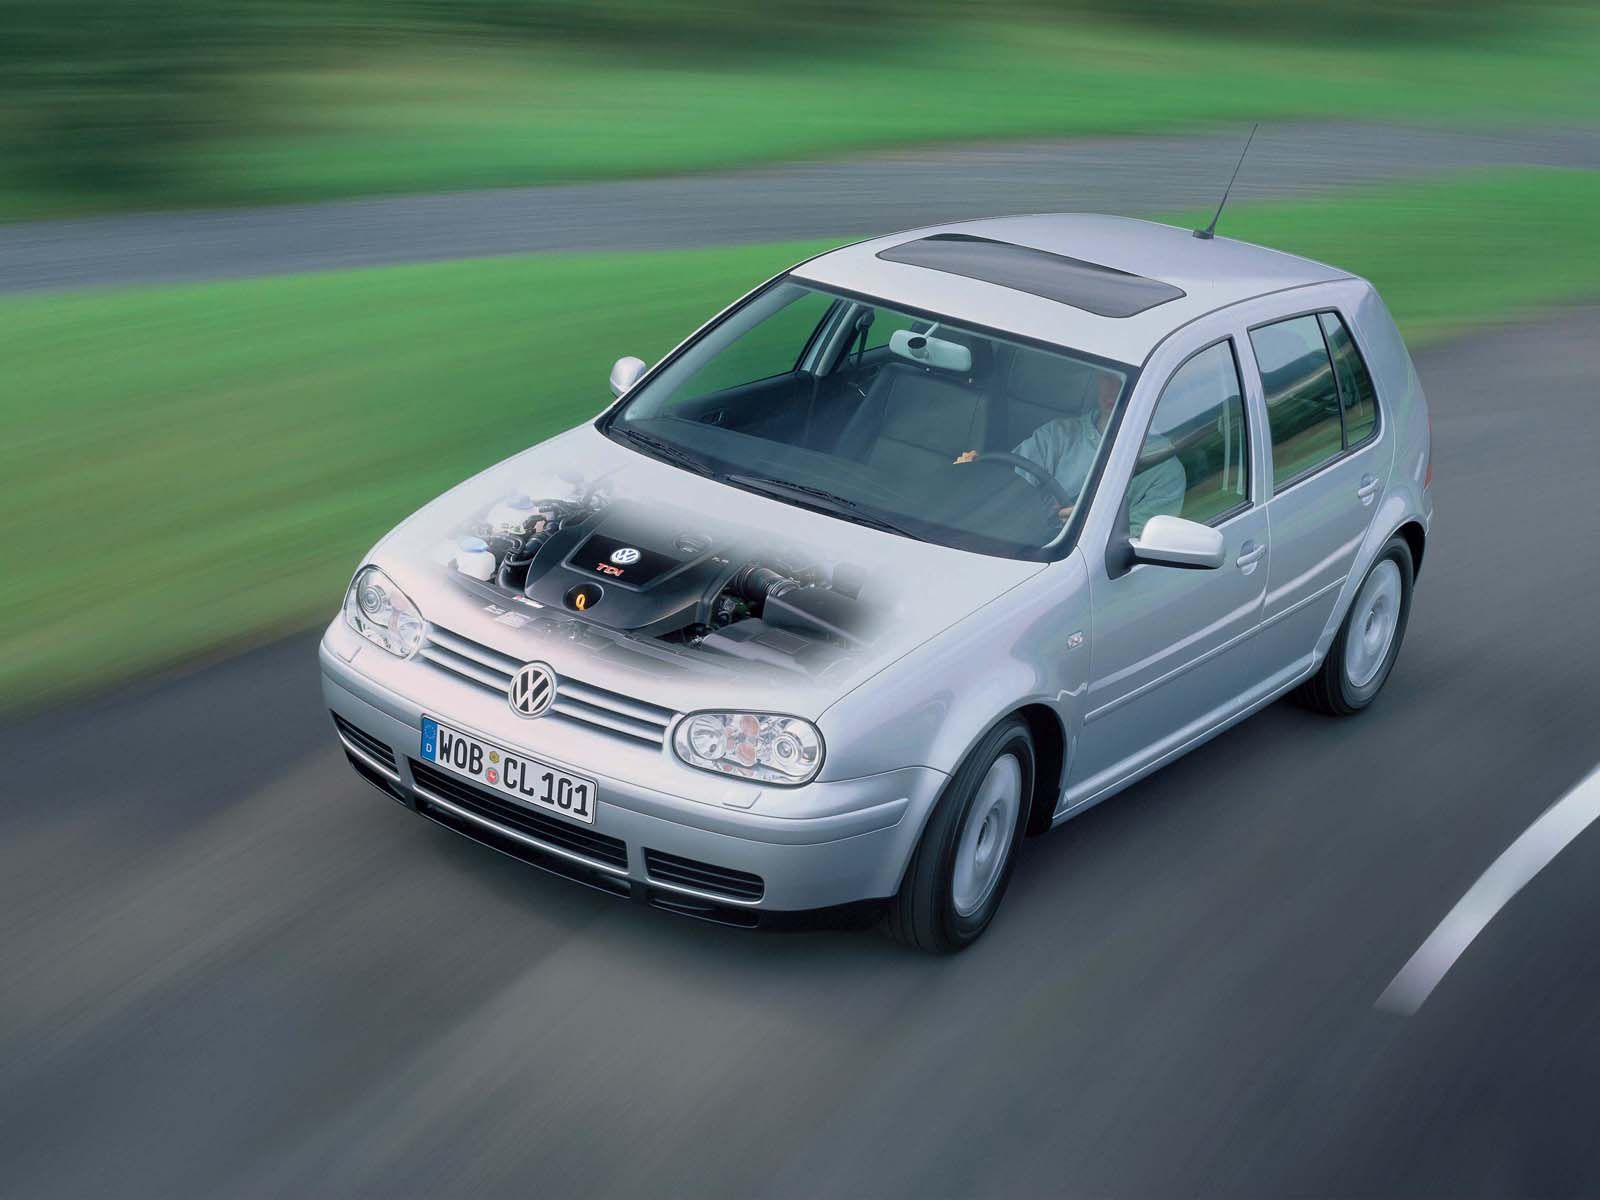 Volkswagen Golf Iv Photos Photogallery With 107 Pics